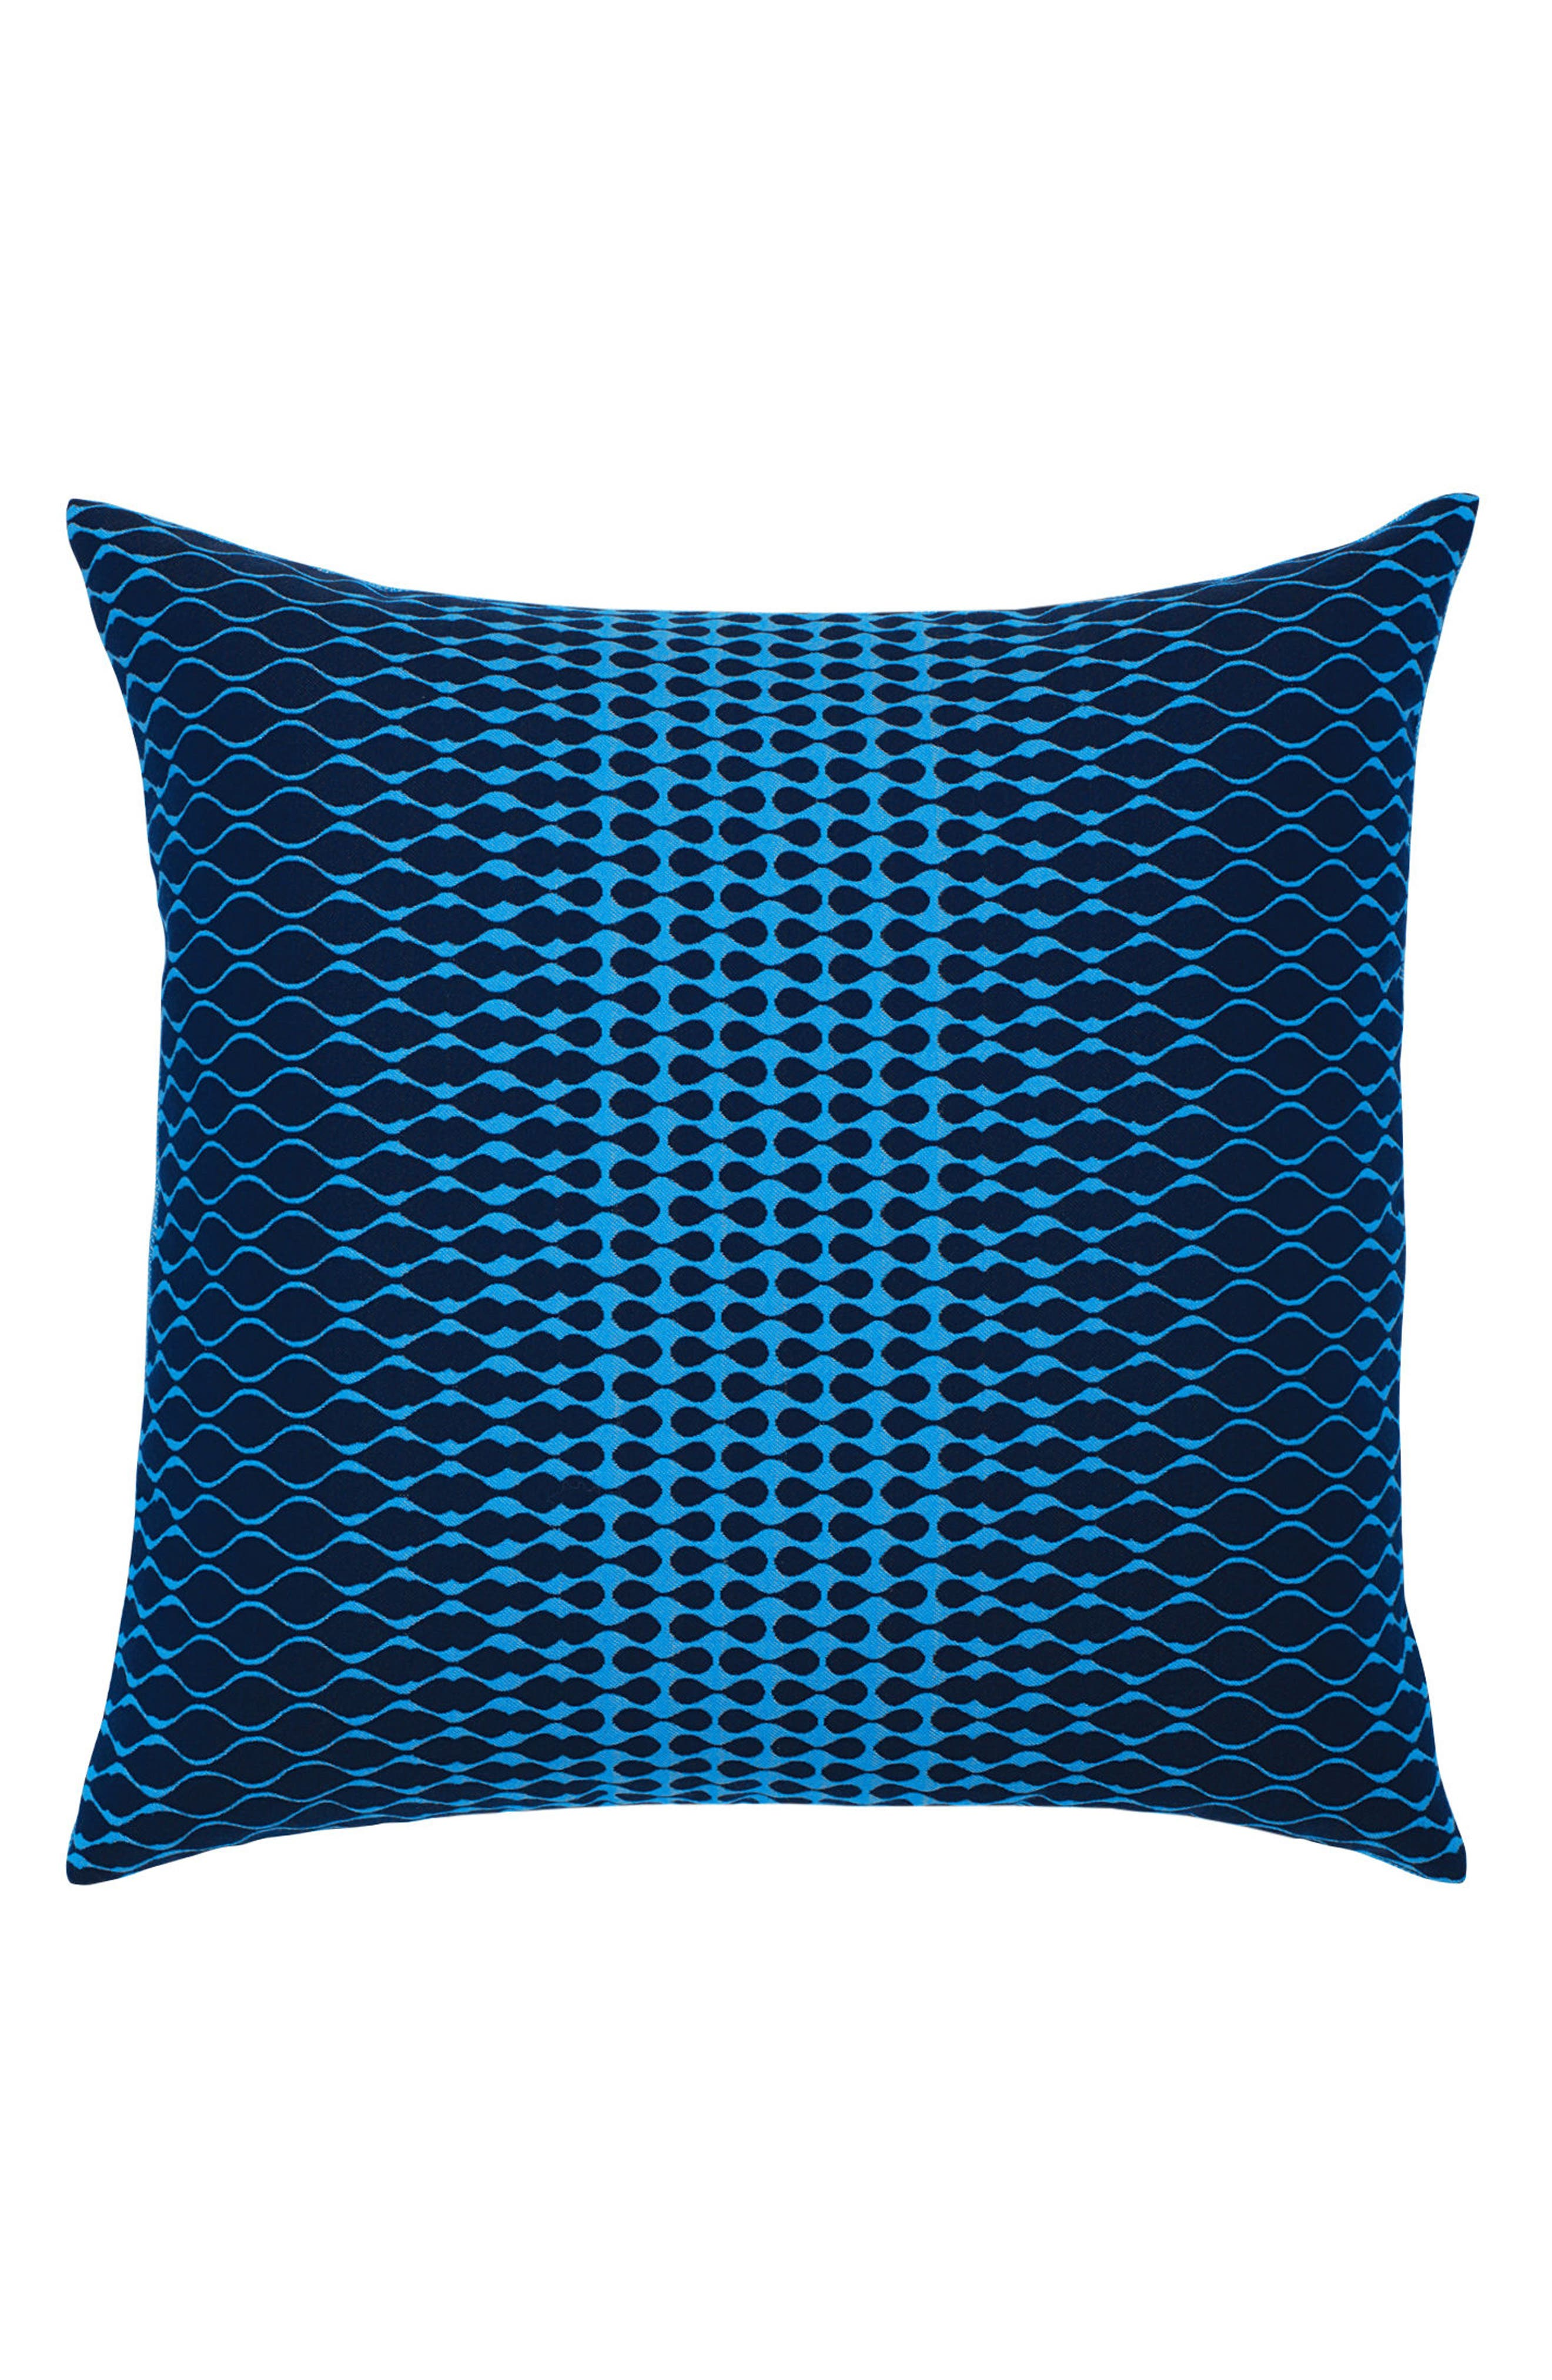 Optic Azure Indoor/Outdoor Accent Pillow,                         Main,                         color, BLUE